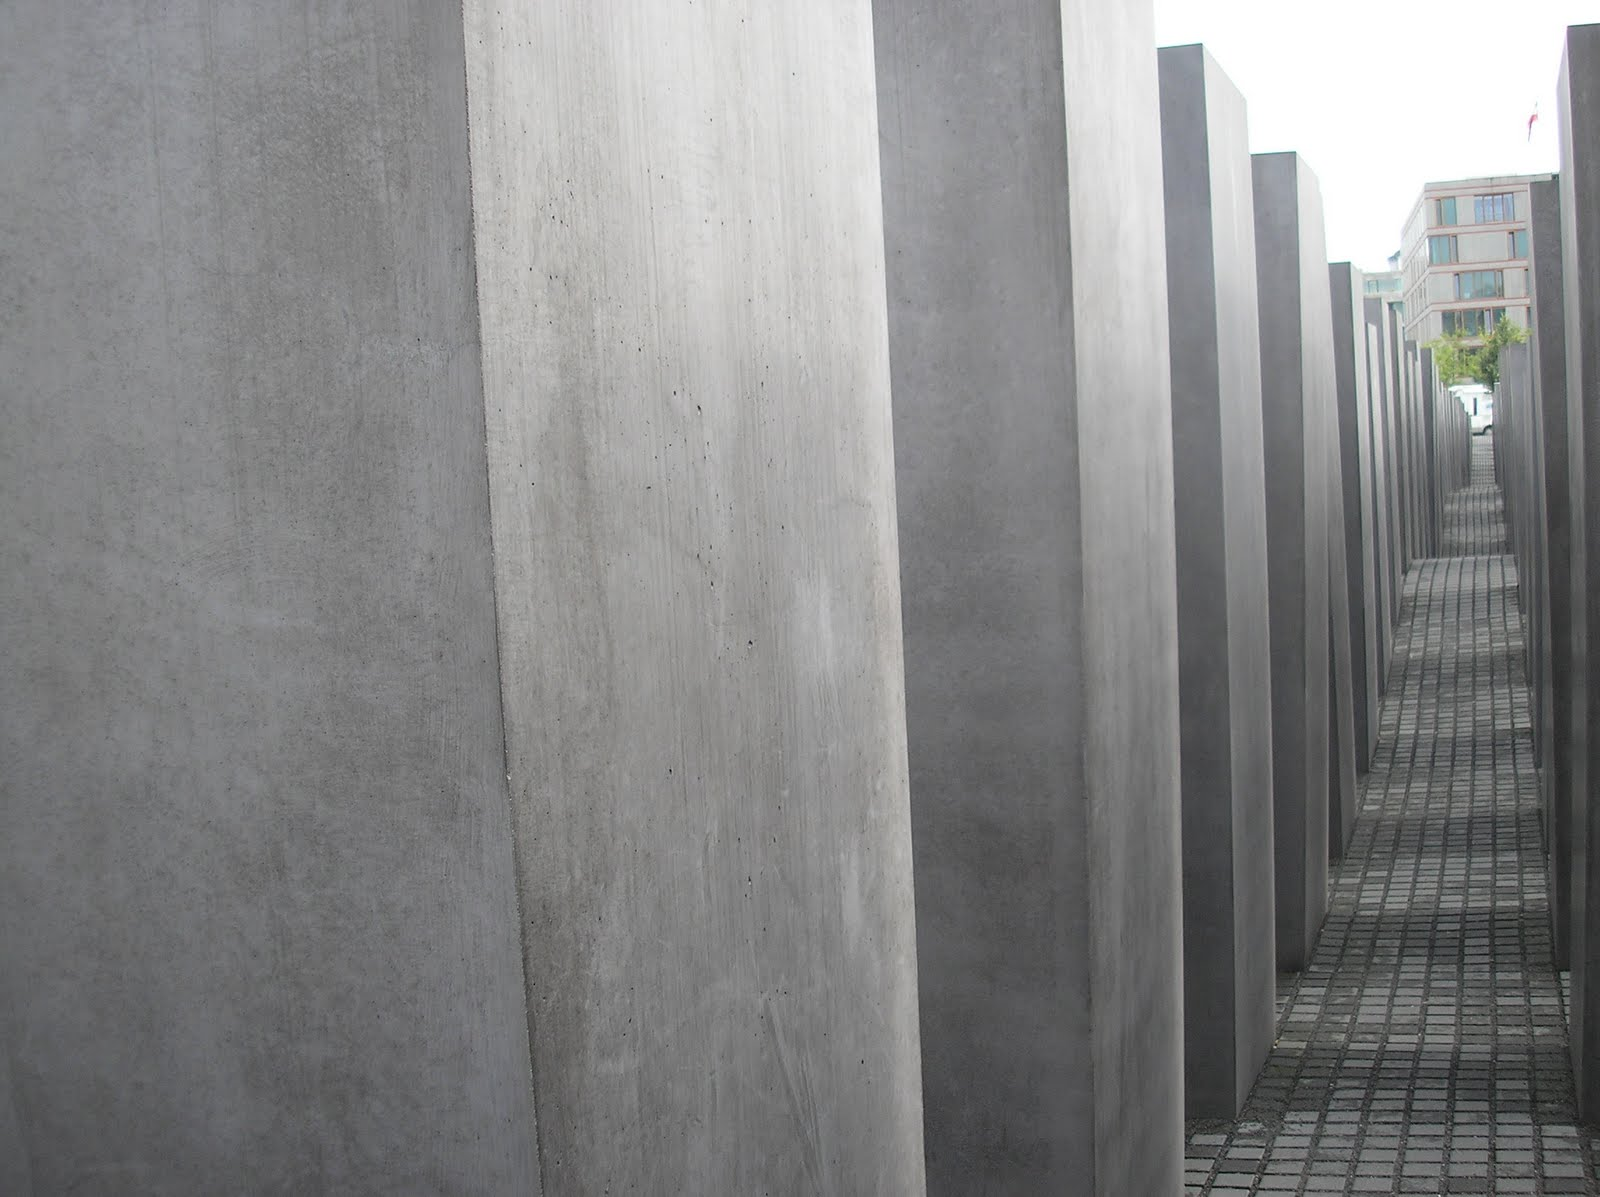 Memorial to the Murdered Jews of Europe - Berlin, Germany. Designed by Peter Eisenman Images curtsy of (EL RINCONCITO, 2011)